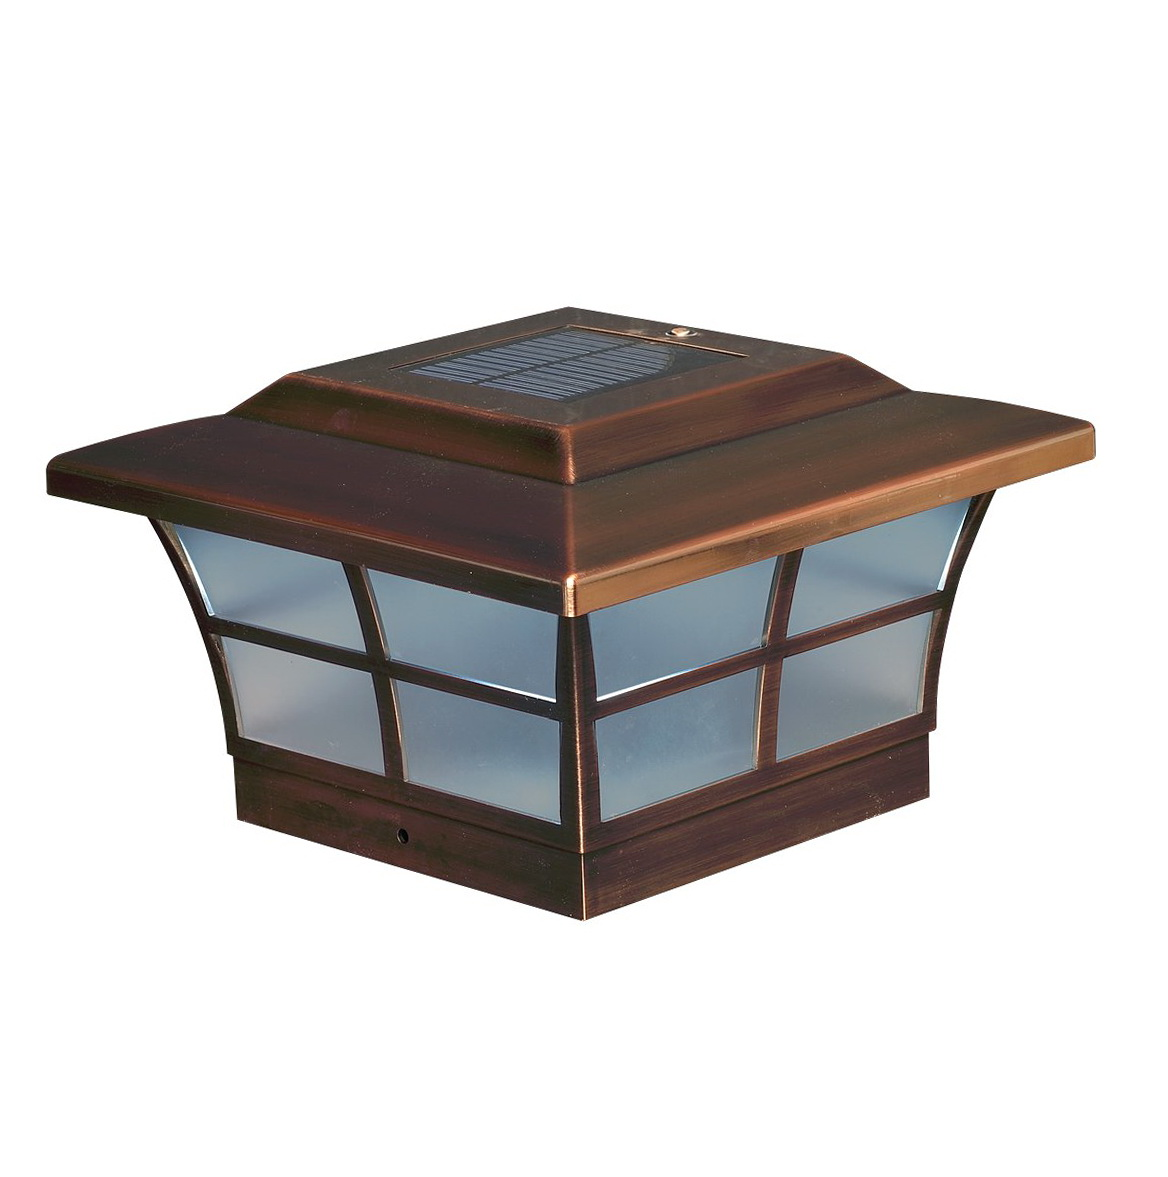 Post Cap Solar Lights For Deck Lowes 4x4 Home Depot 100